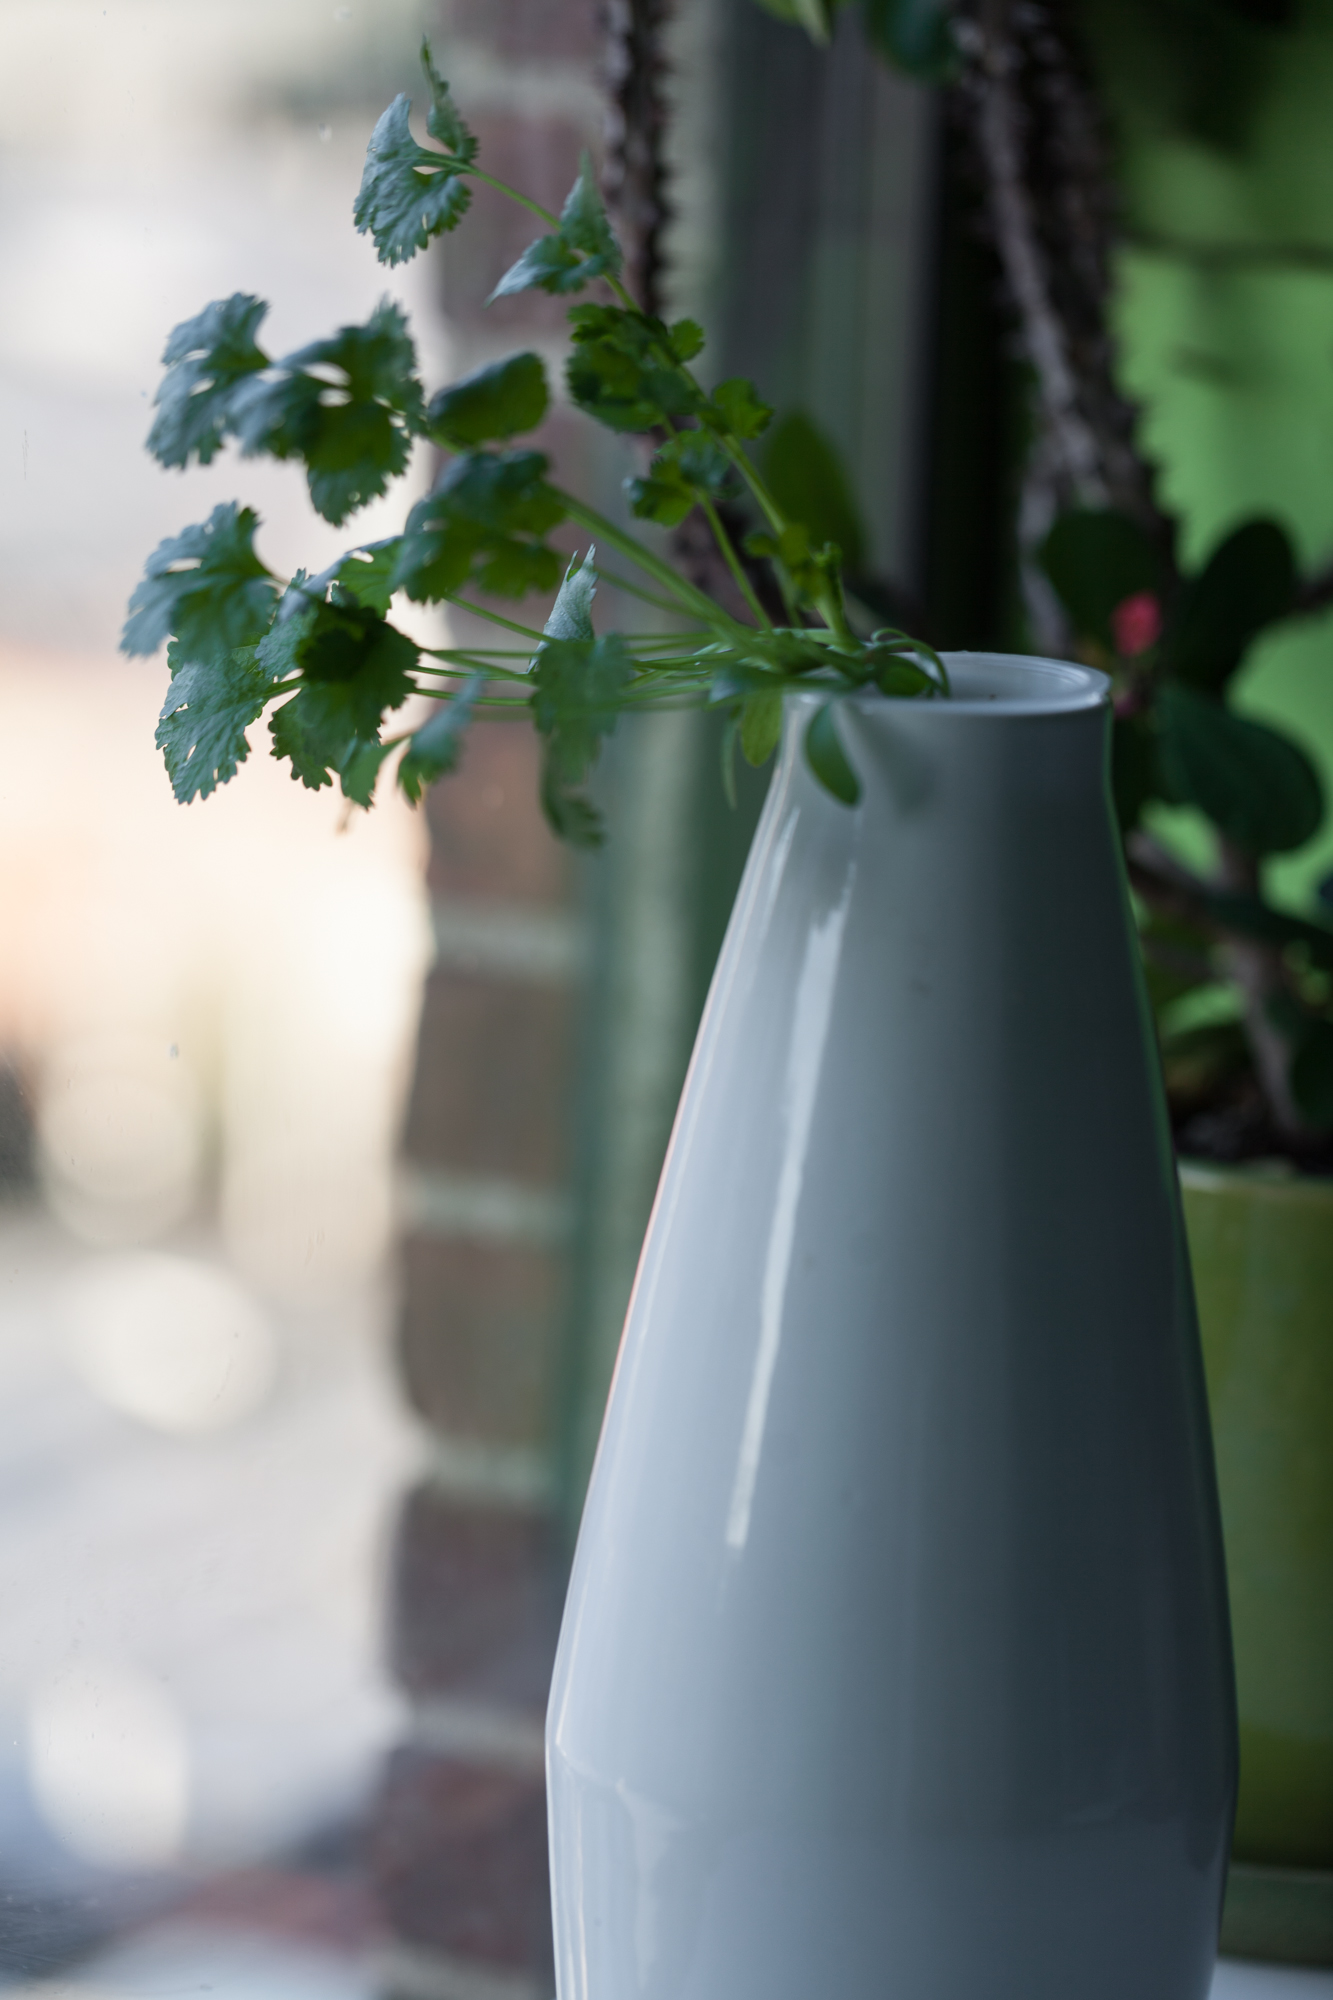 I have a couple hydroponic Amphora vases from  Cloud Farms , which I like to grown cilantro and basil out of.